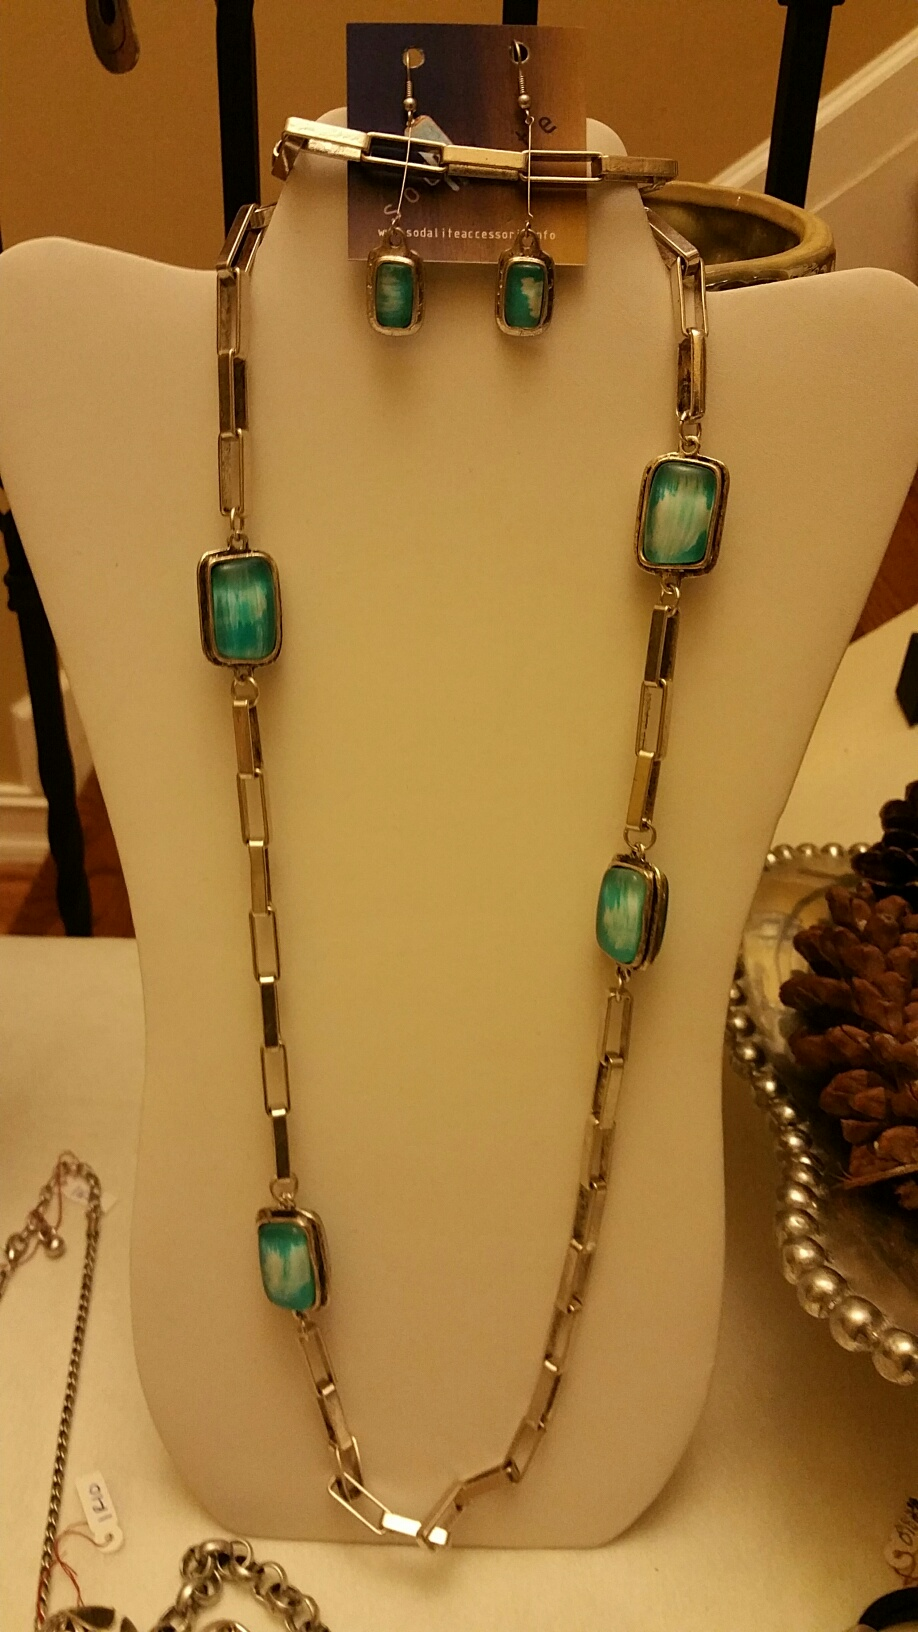 Long Aqua Necklace 1N46 and Long Earrings 1EA47